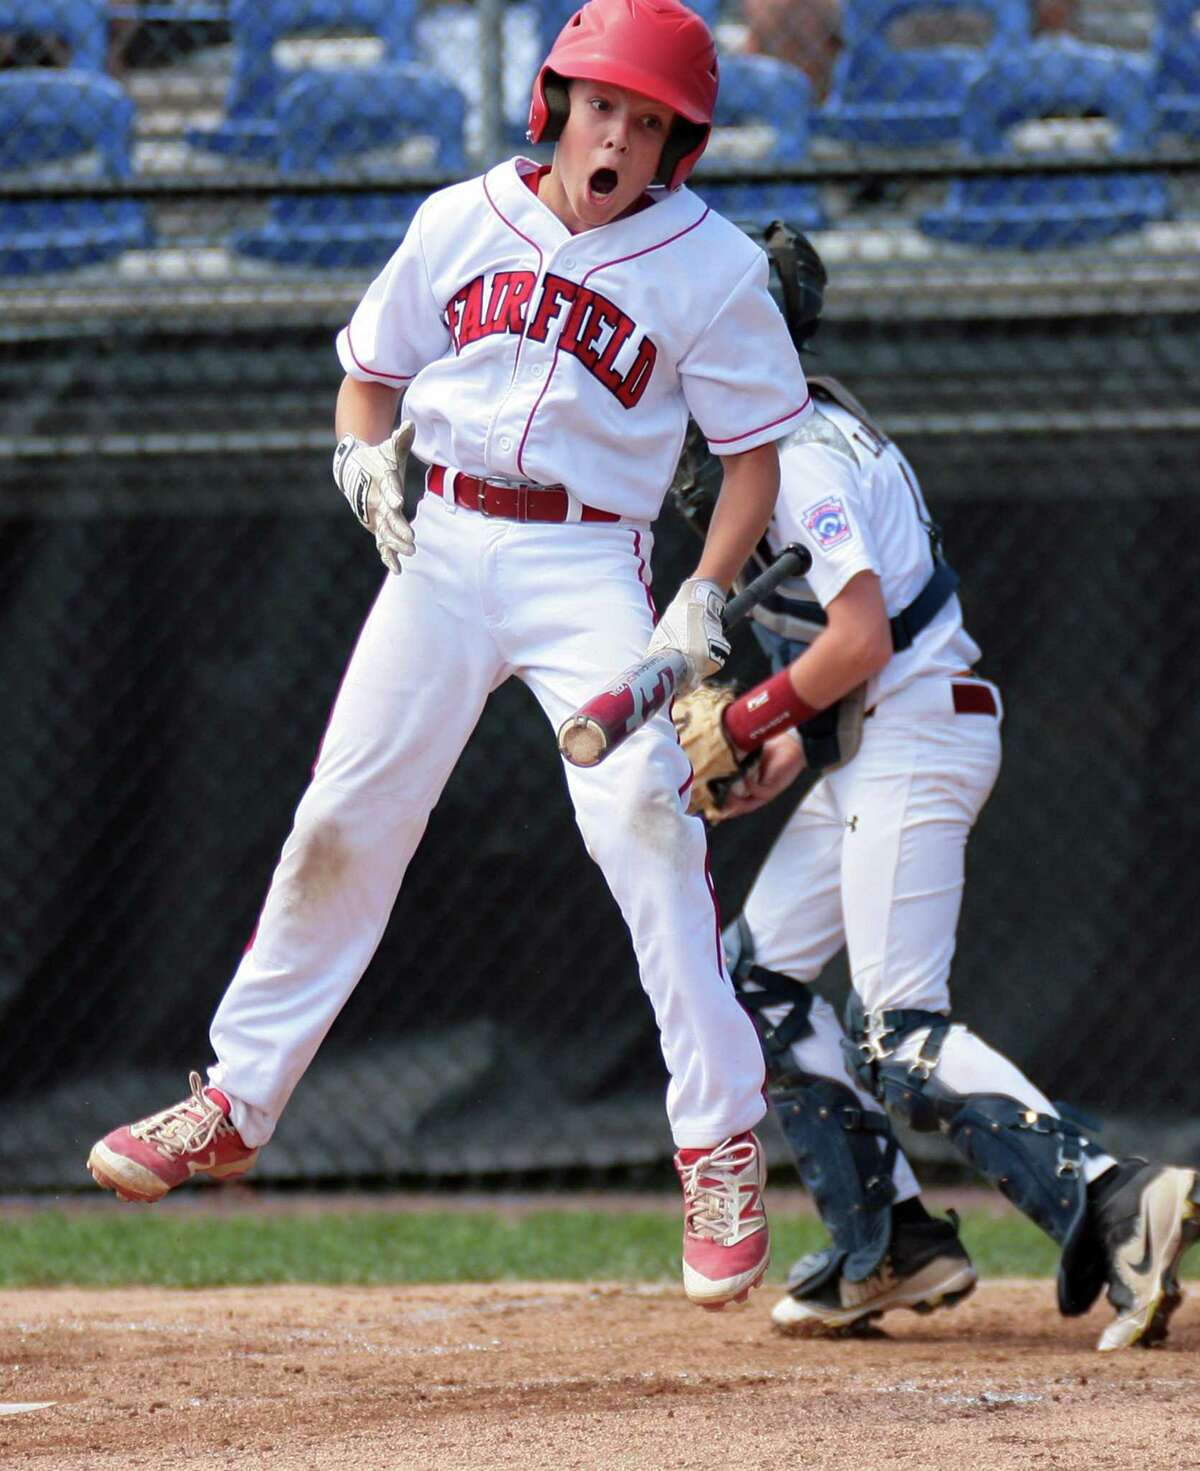 Fairfield American's Timmy Domizio reacts after striking out on Thursday.